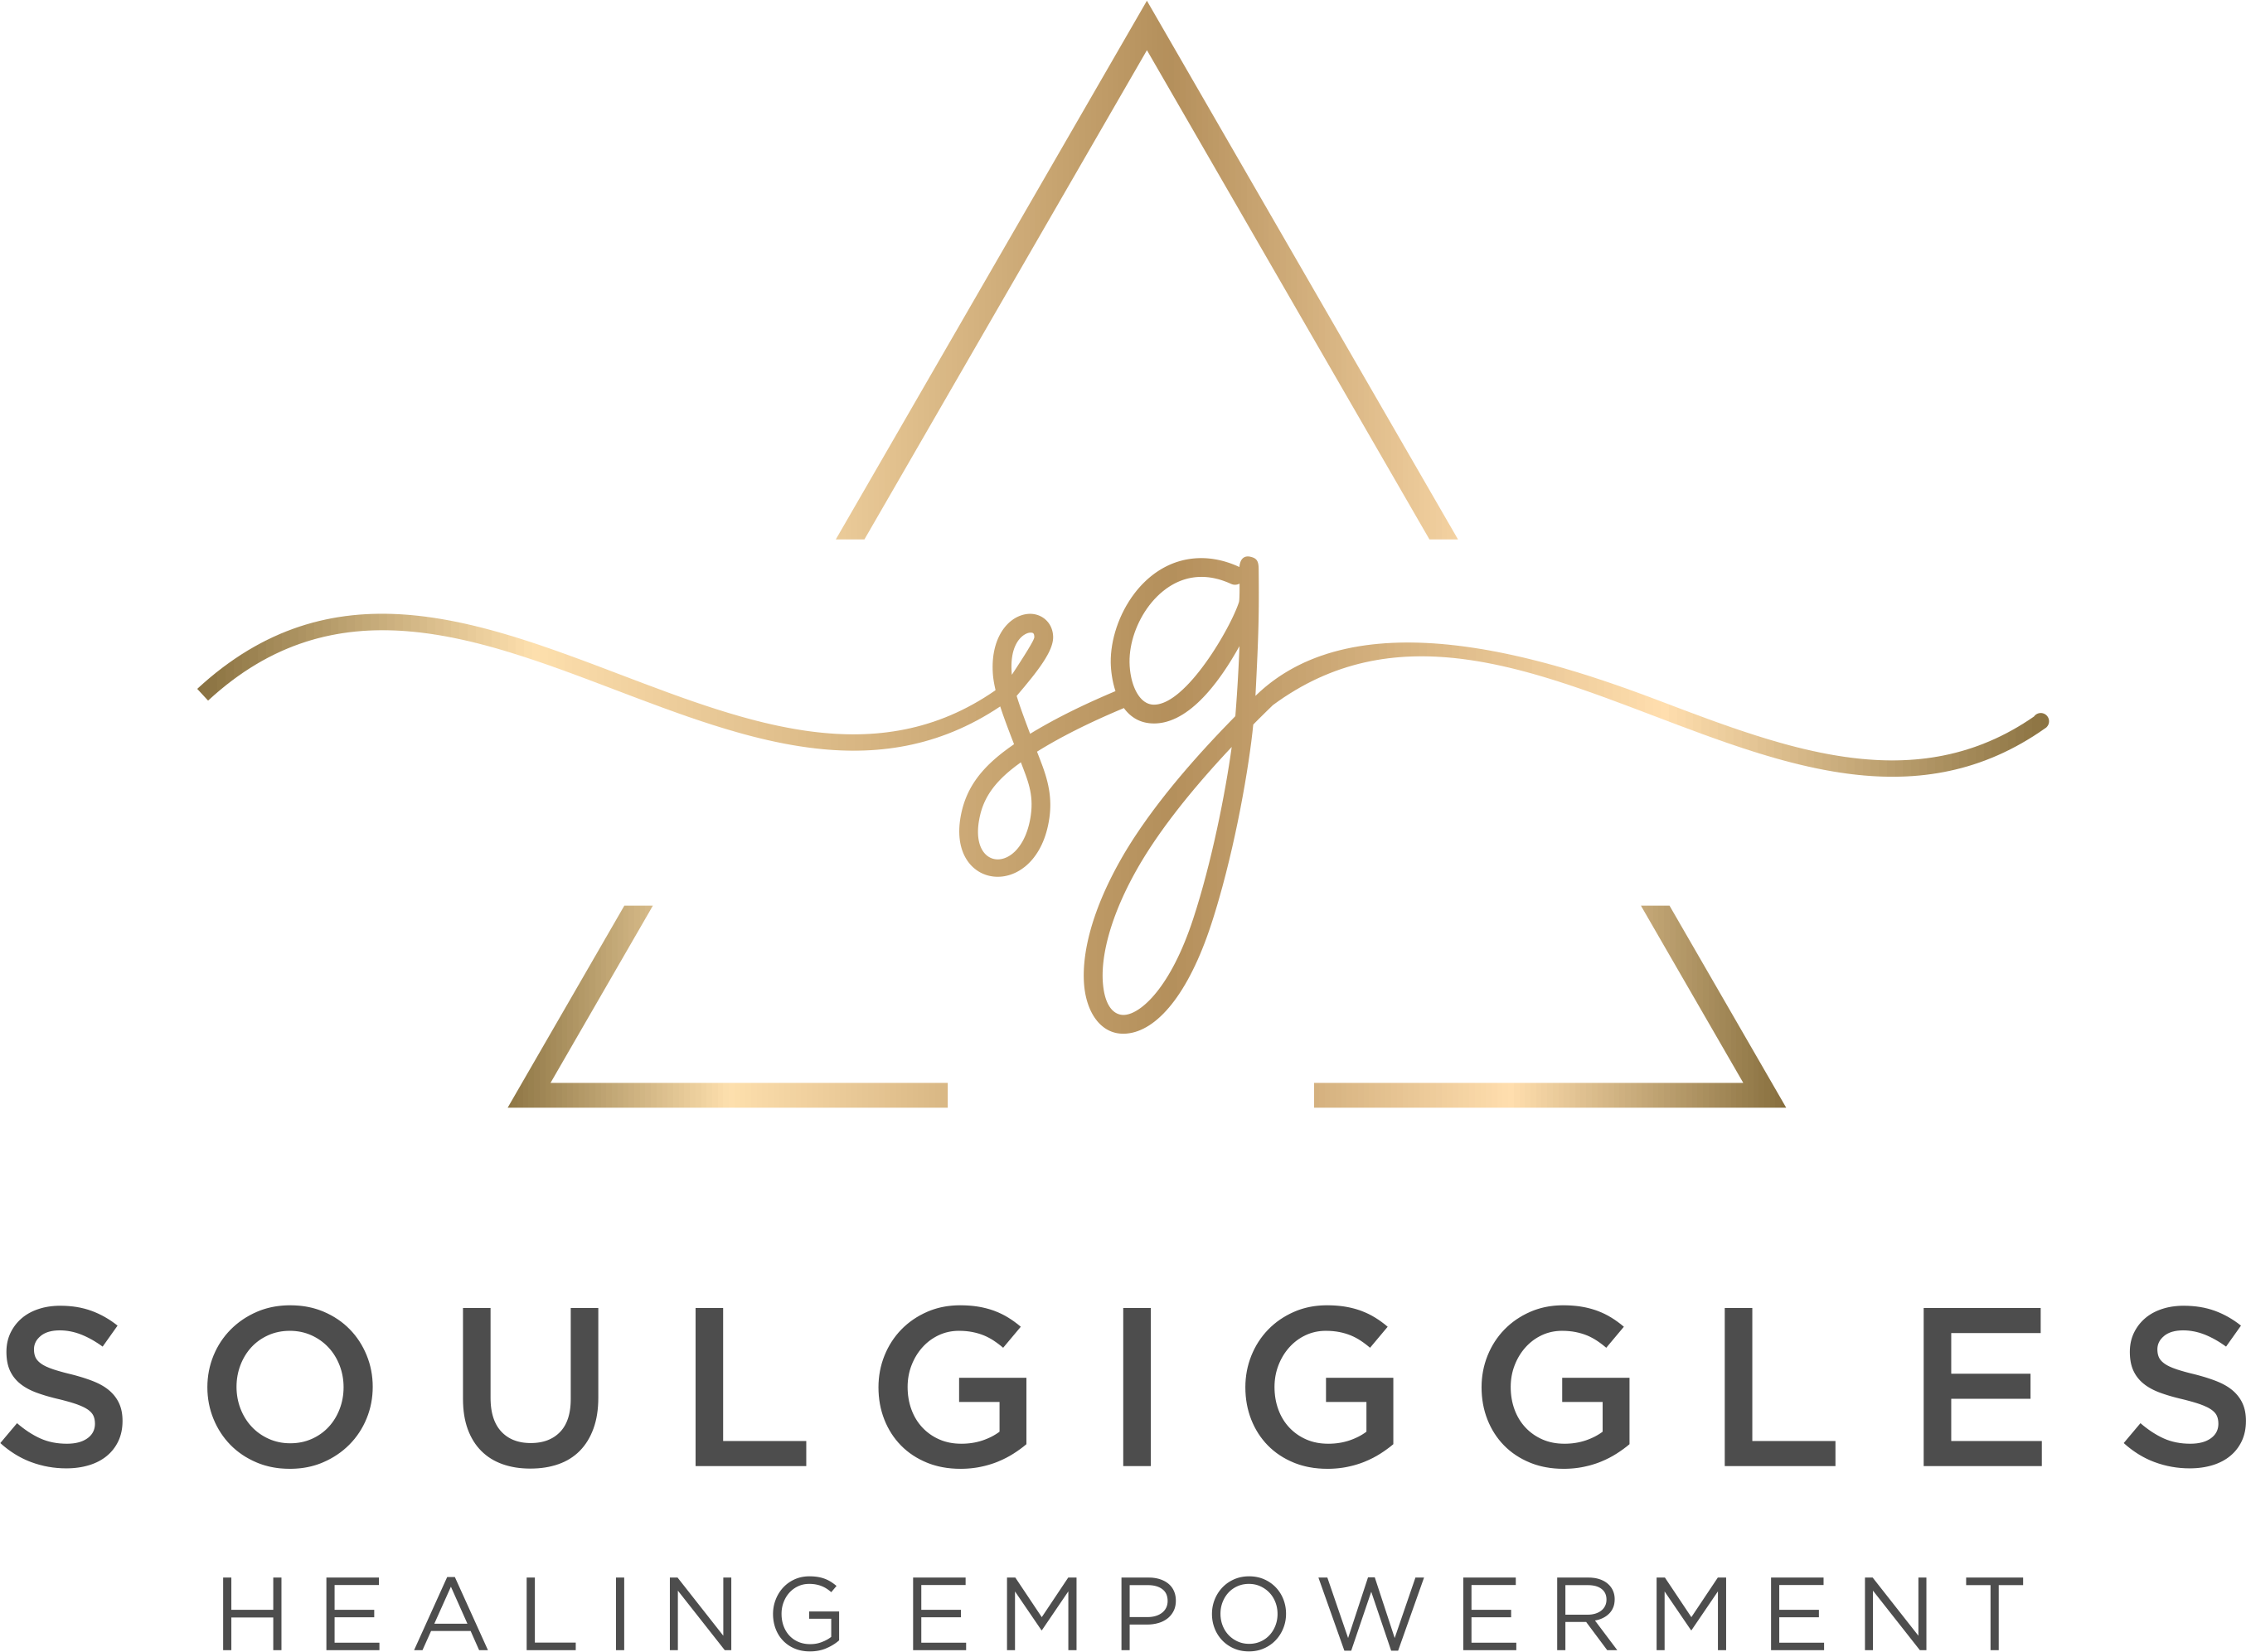 Soul Giggle Network